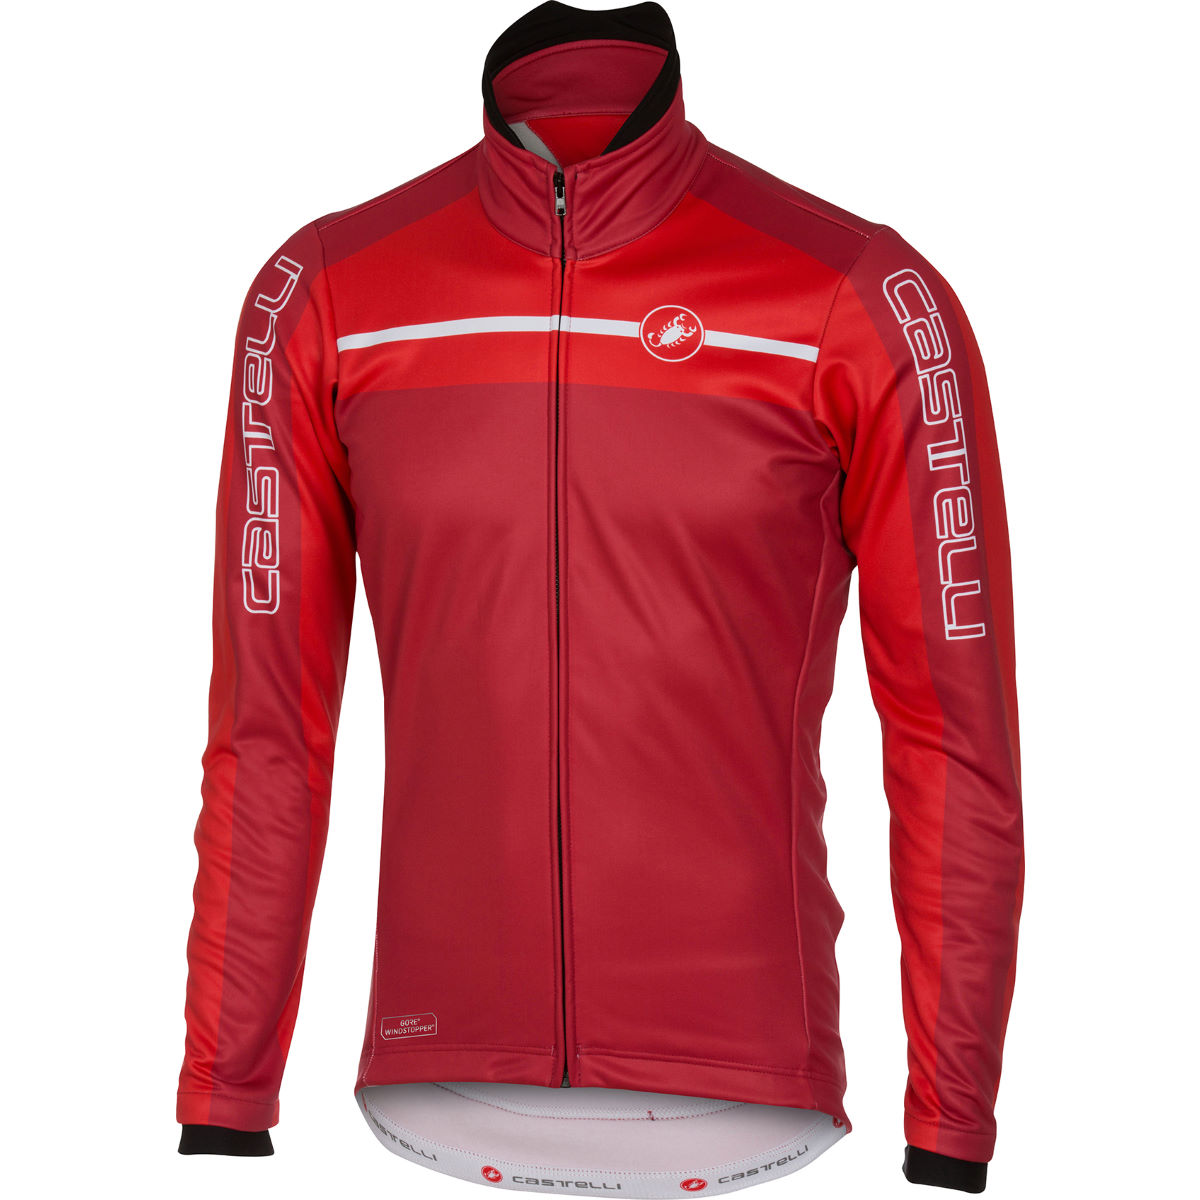 Veste Castelli Velocissimo - XL Red/Ruby Red Coupe-vents vélo